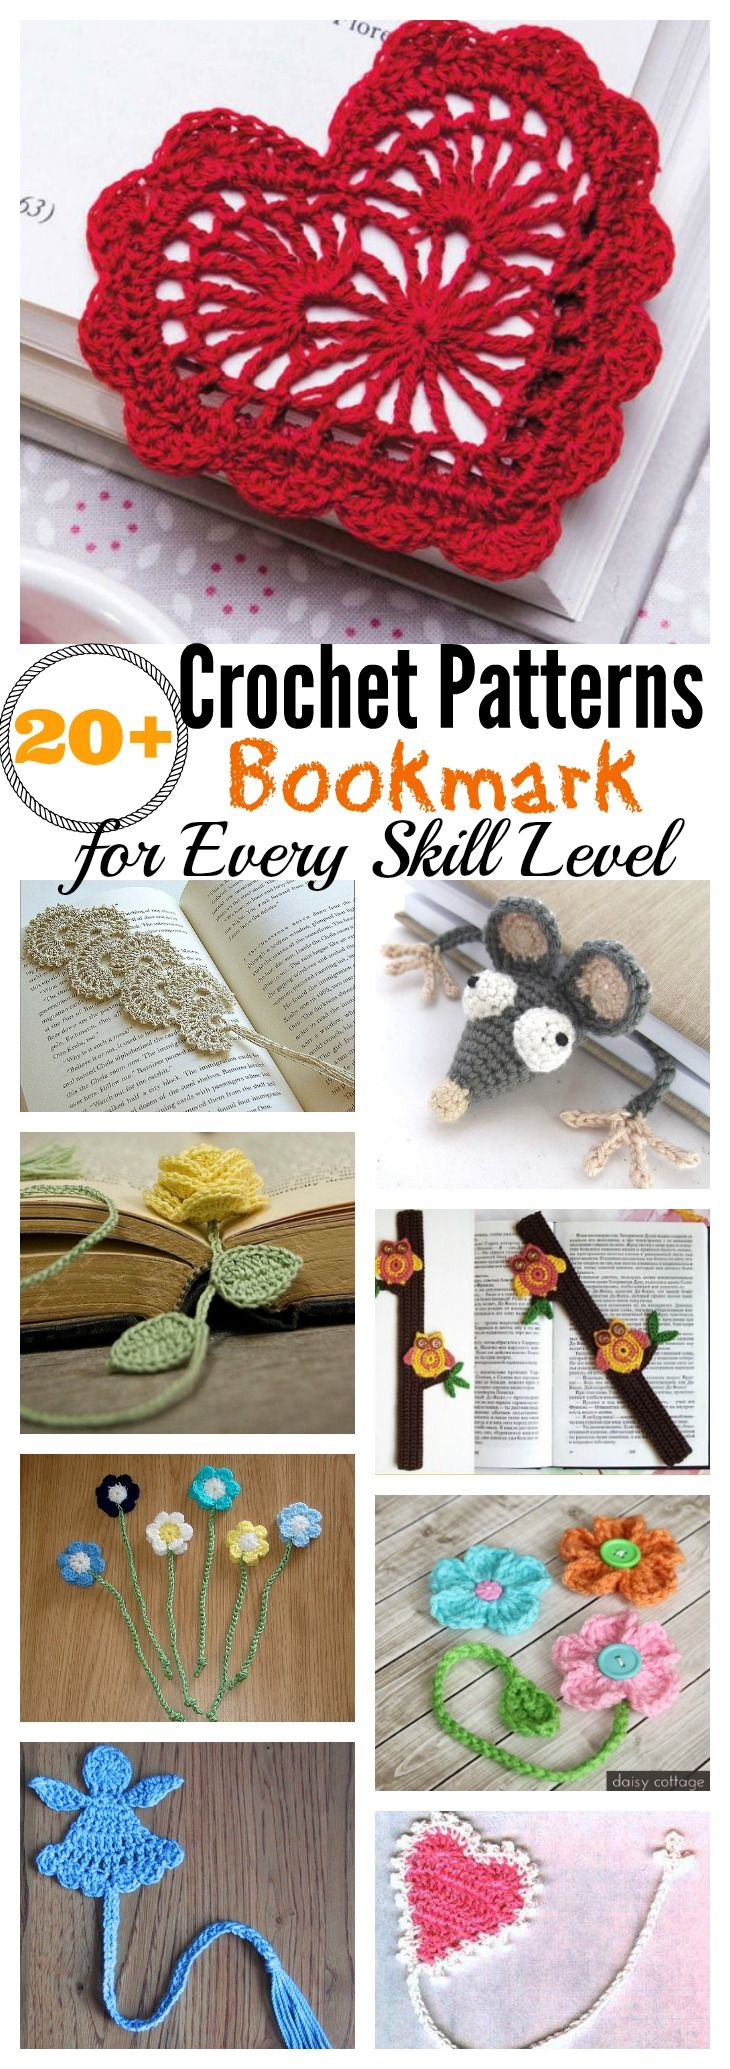 20 crochet bookmark patterns for every skill level crochet 20 crochet bookmark patterns for every skill level bankloansurffo Gallery